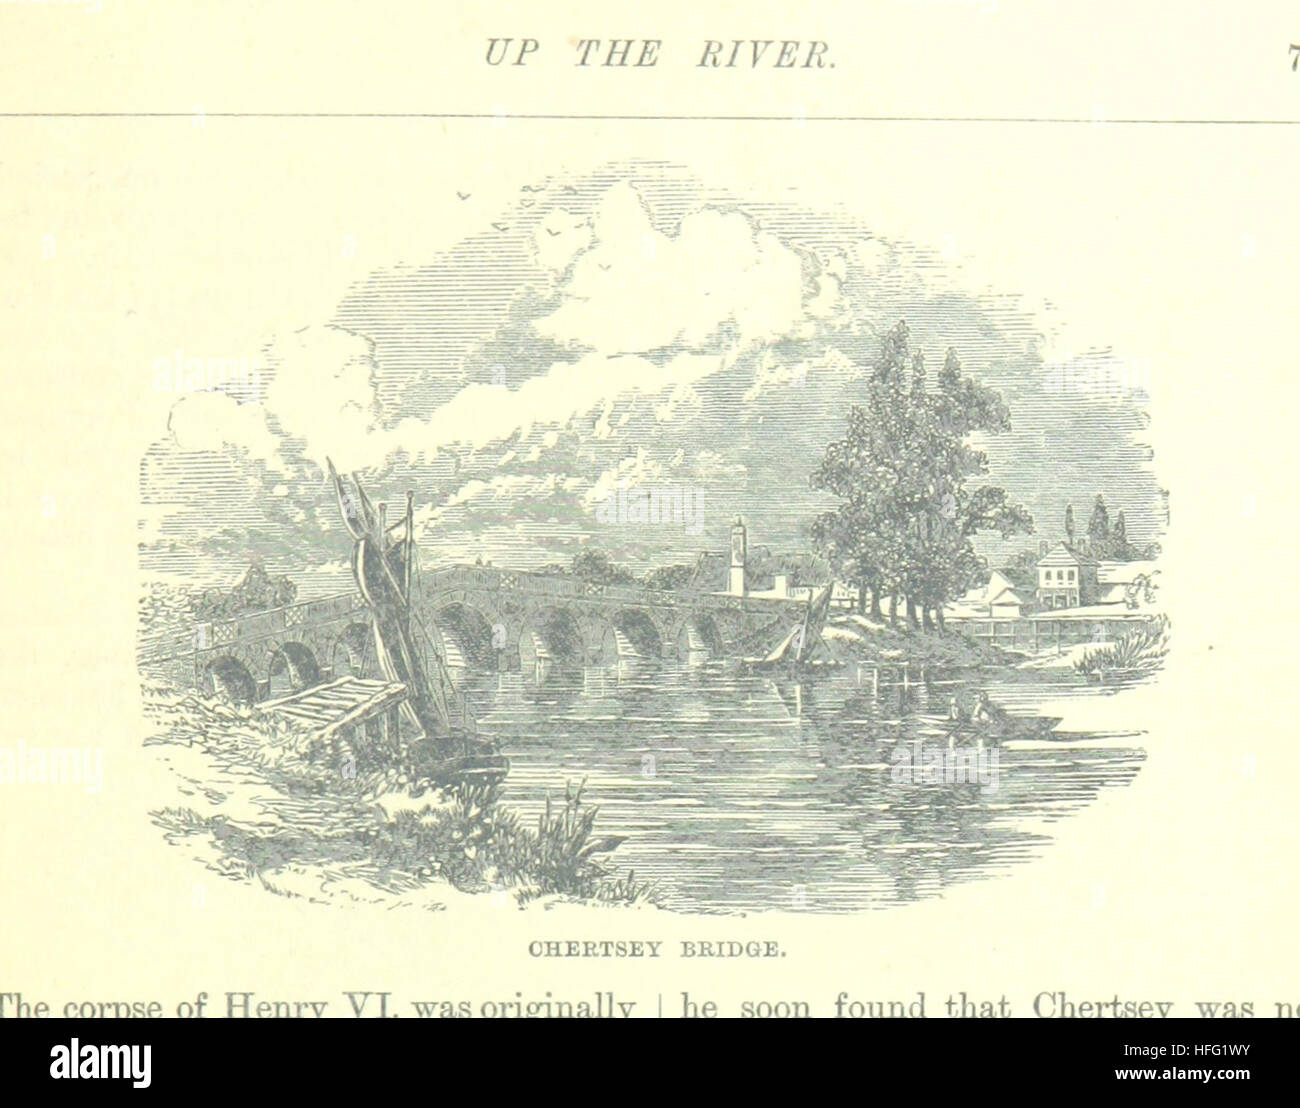 Image taken from page 103 of 'Up the River from Westminster to Windsor and Oxford; a descriptive panorama of - Stock Image